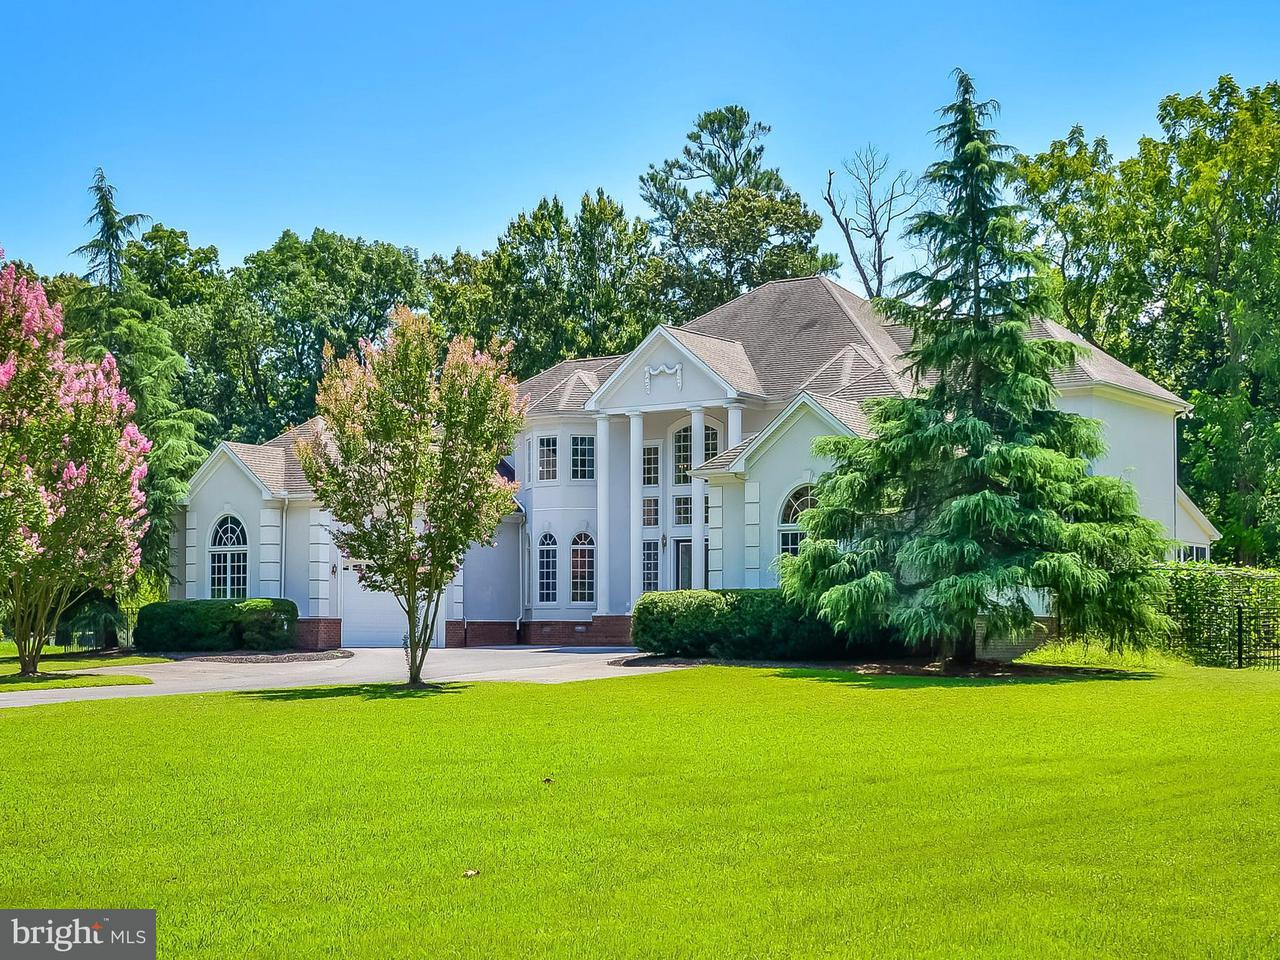 Single Family Home for Sale at 1406 BELL ISLAND Trail 1406 BELL ISLAND Trail Salisbury, Maryland 21801 United States